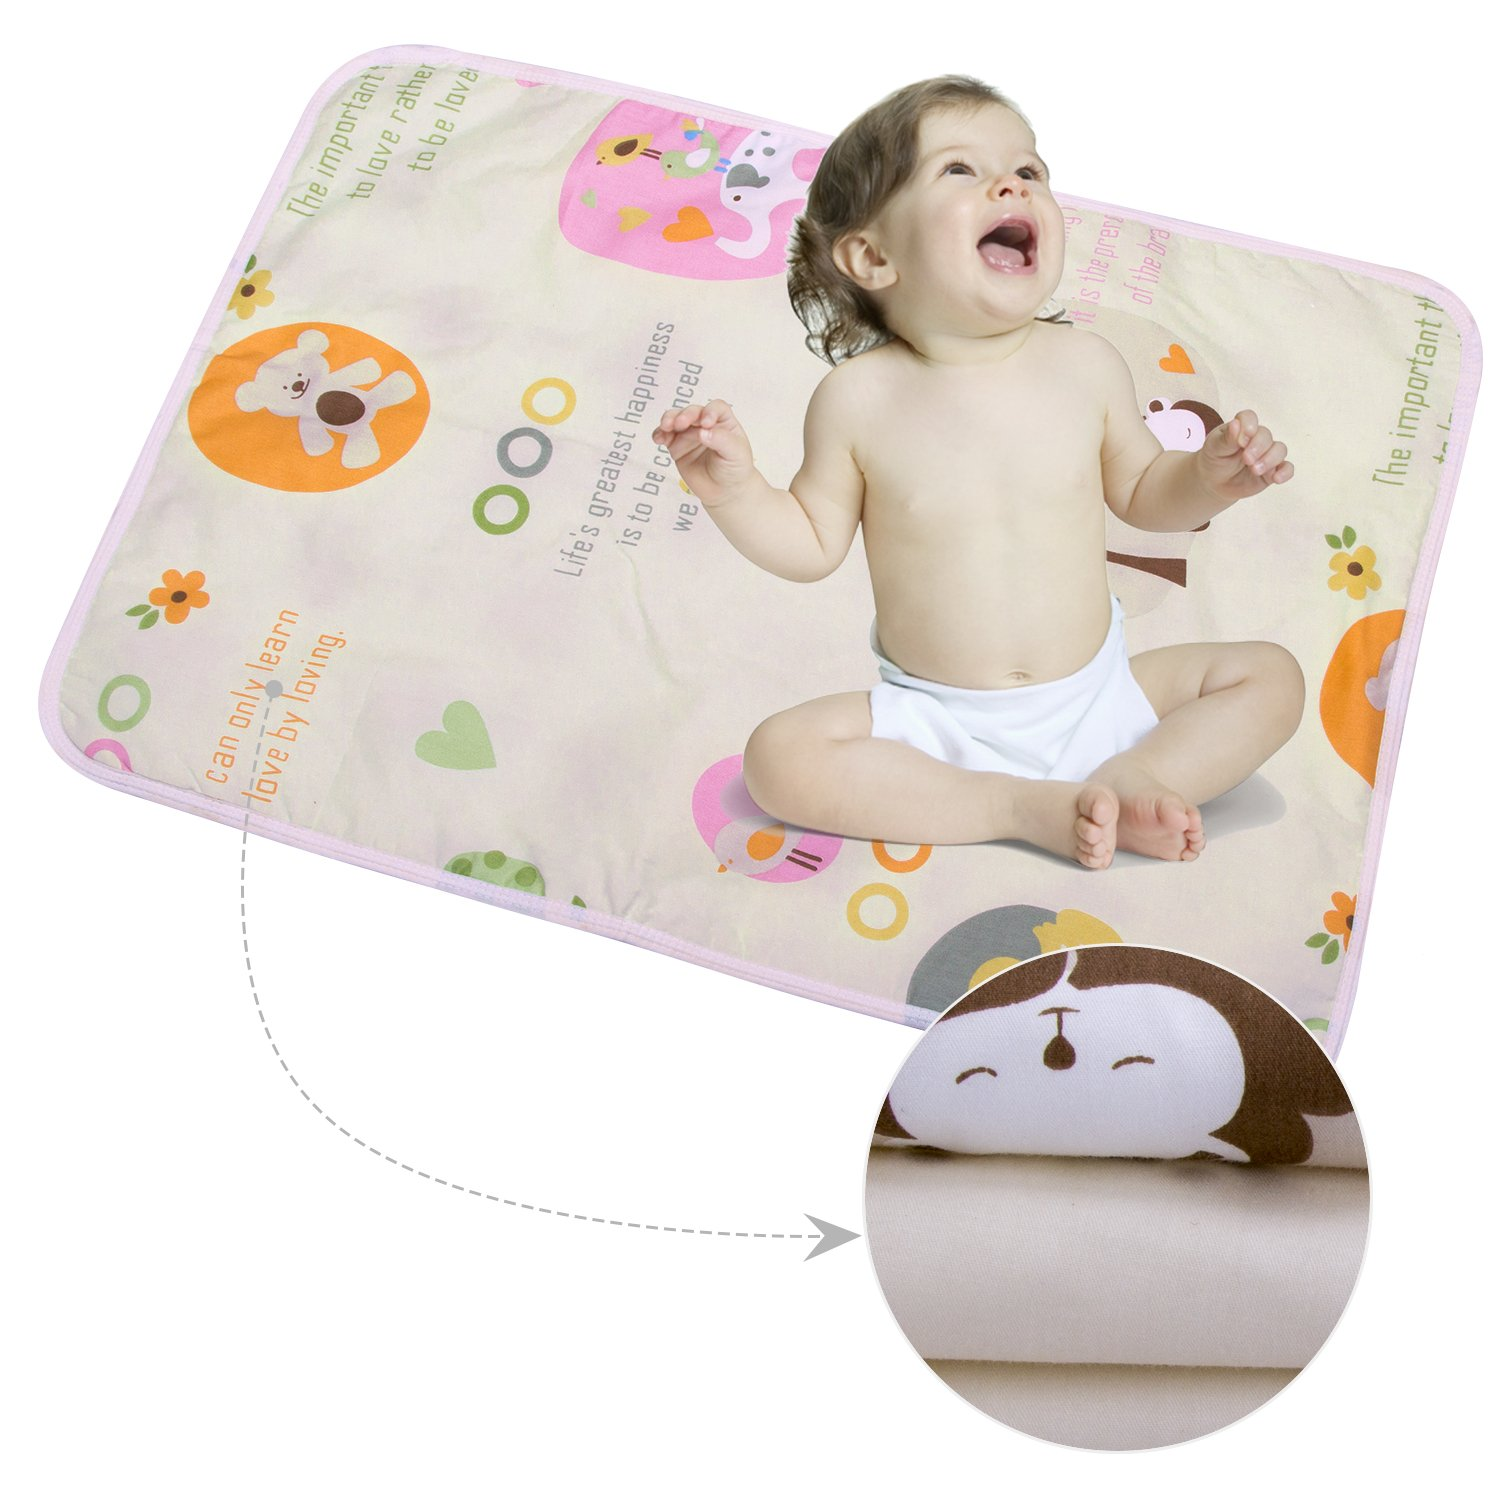 3PCS Infant Waterproof Urine Mat Cover - Breathable Changing Pad Protector for Baby Boys Girls (Bear, M - 19.69 x 27.56 Inch (3 Piece)) anjerry